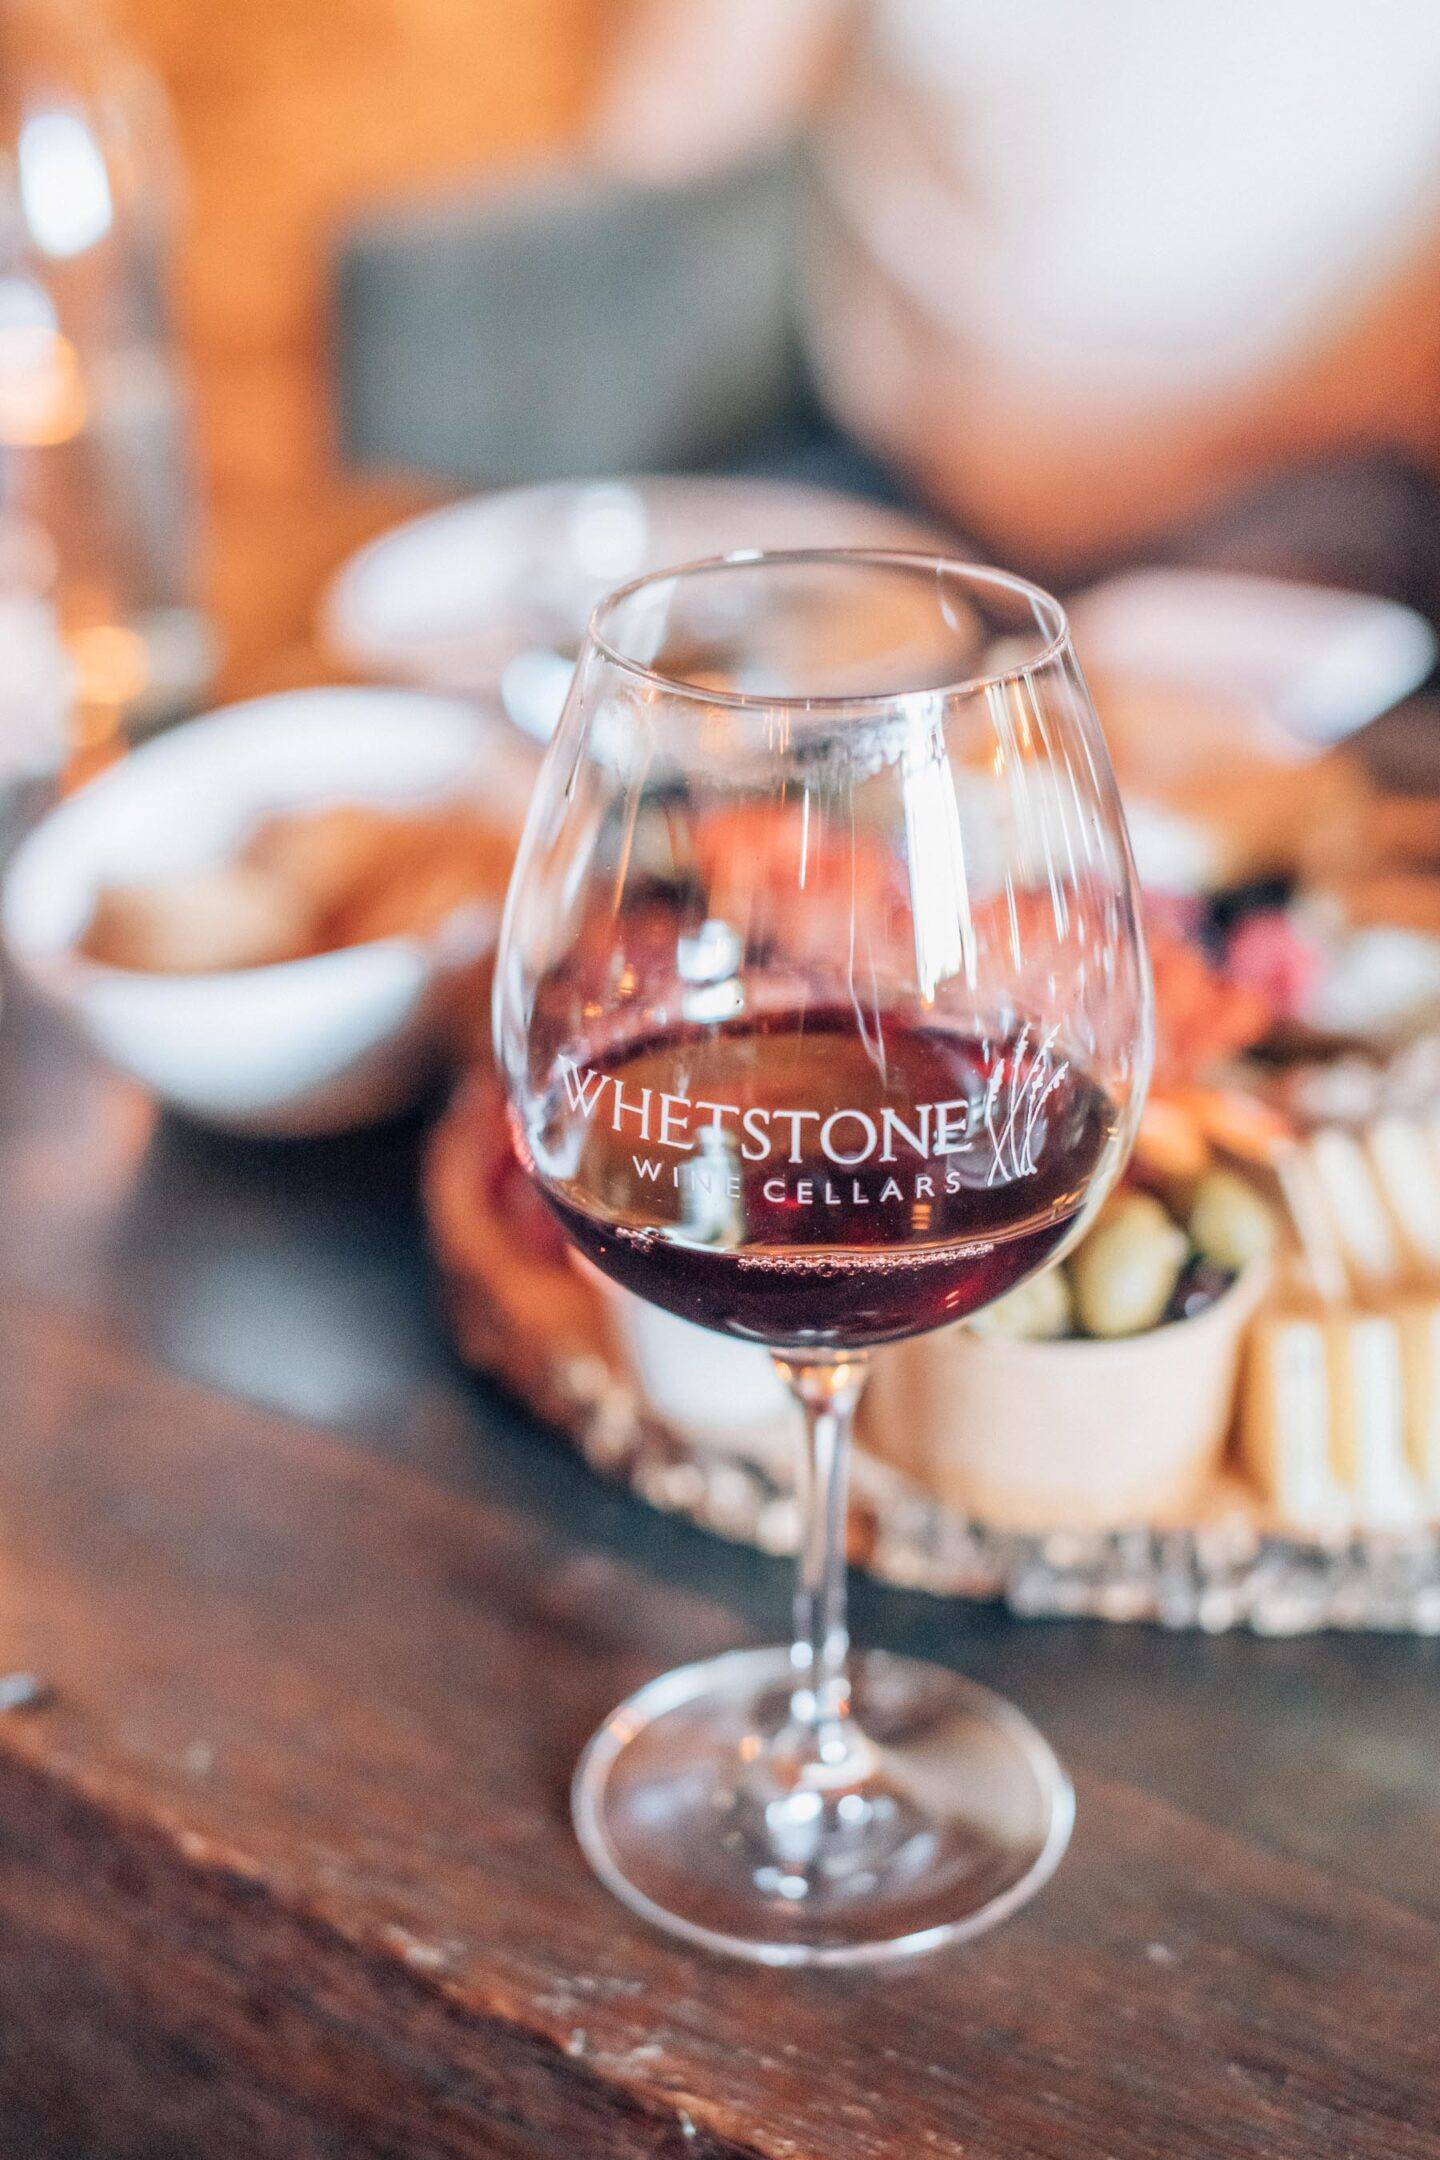 Whetstone wines review, by travel blogger What The Fab